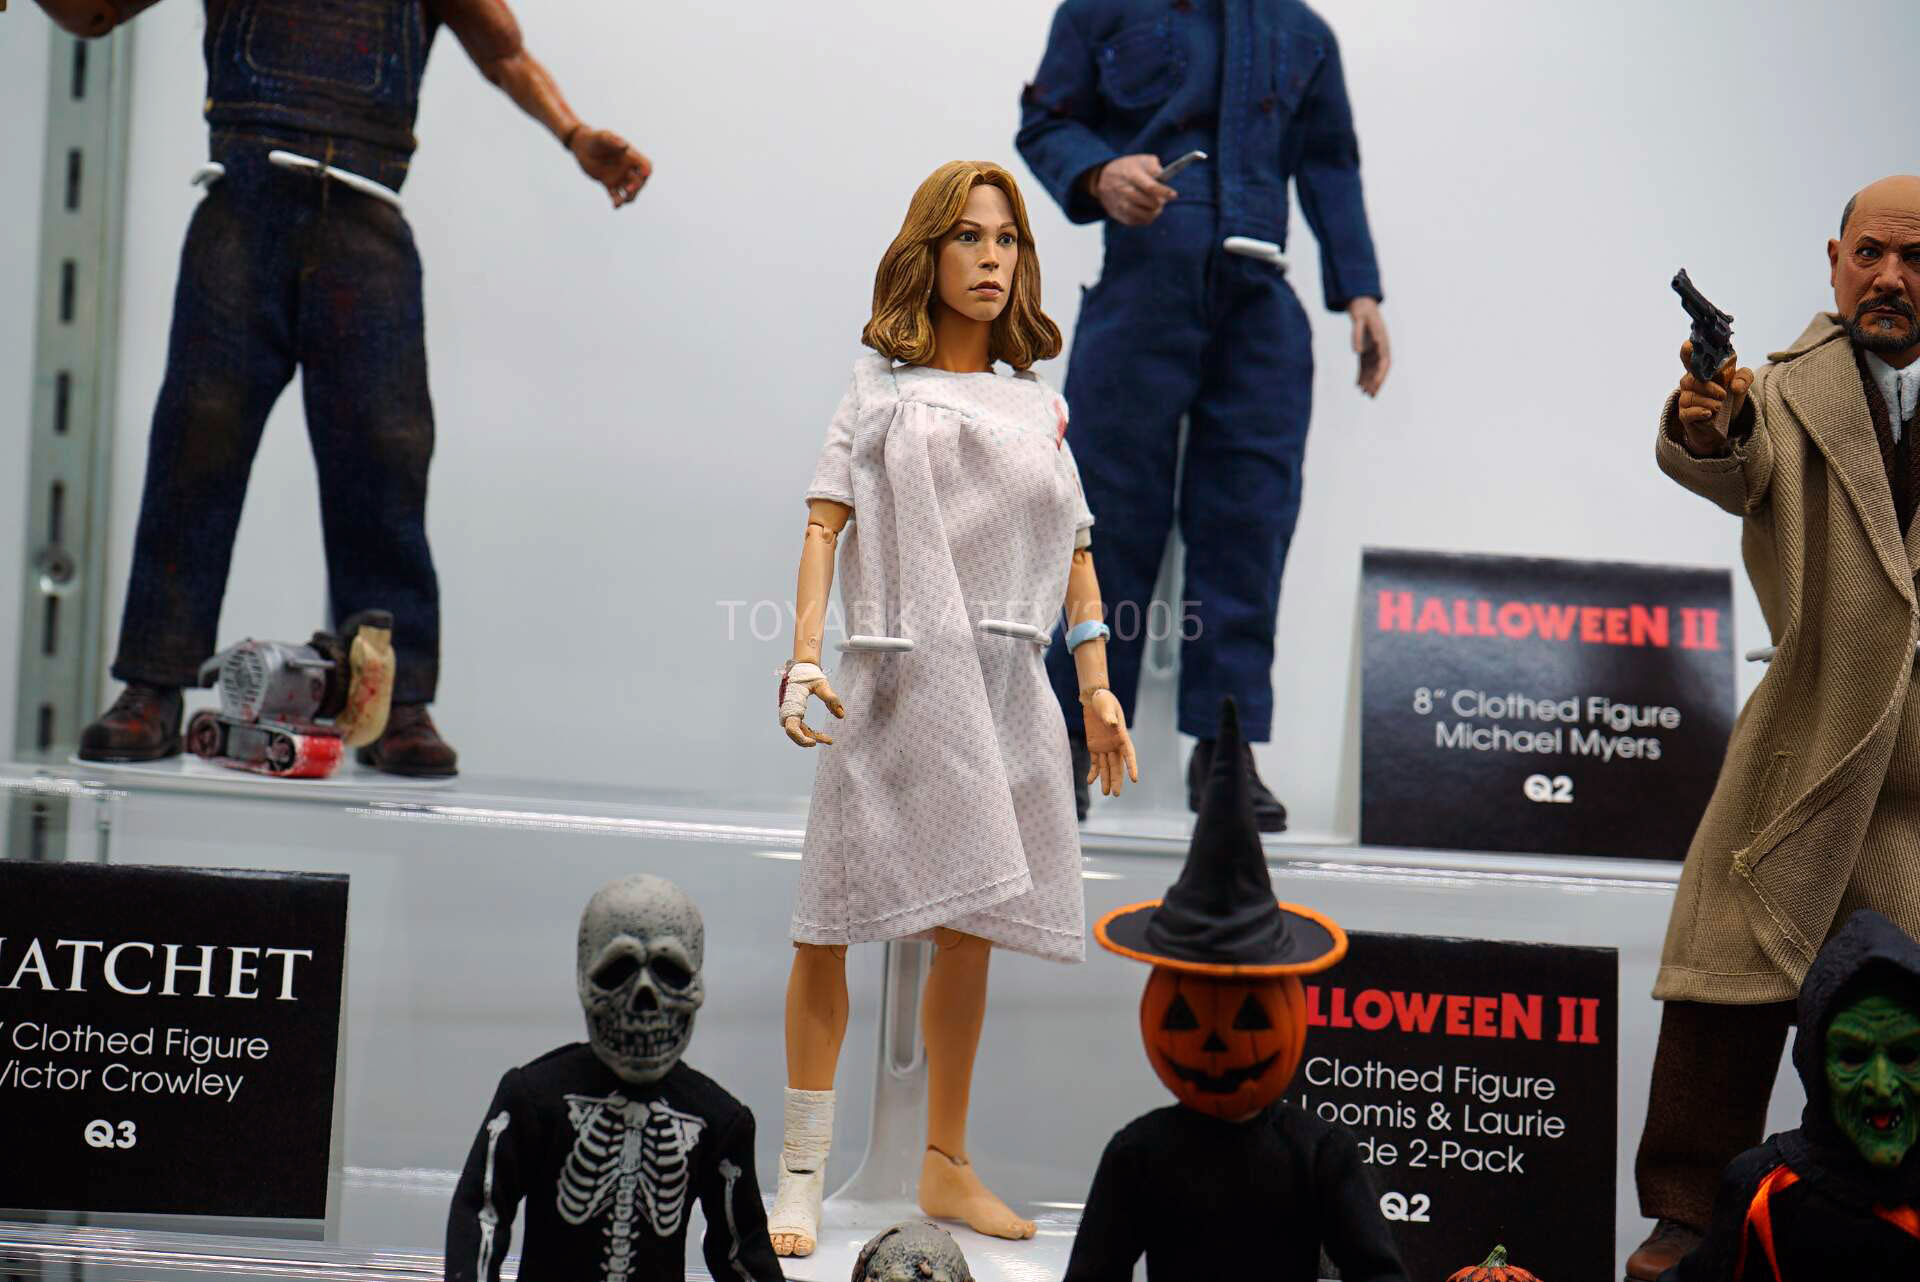 Toy-Fair-2020-NECA-Horror-Sci-Fi-003.jpg